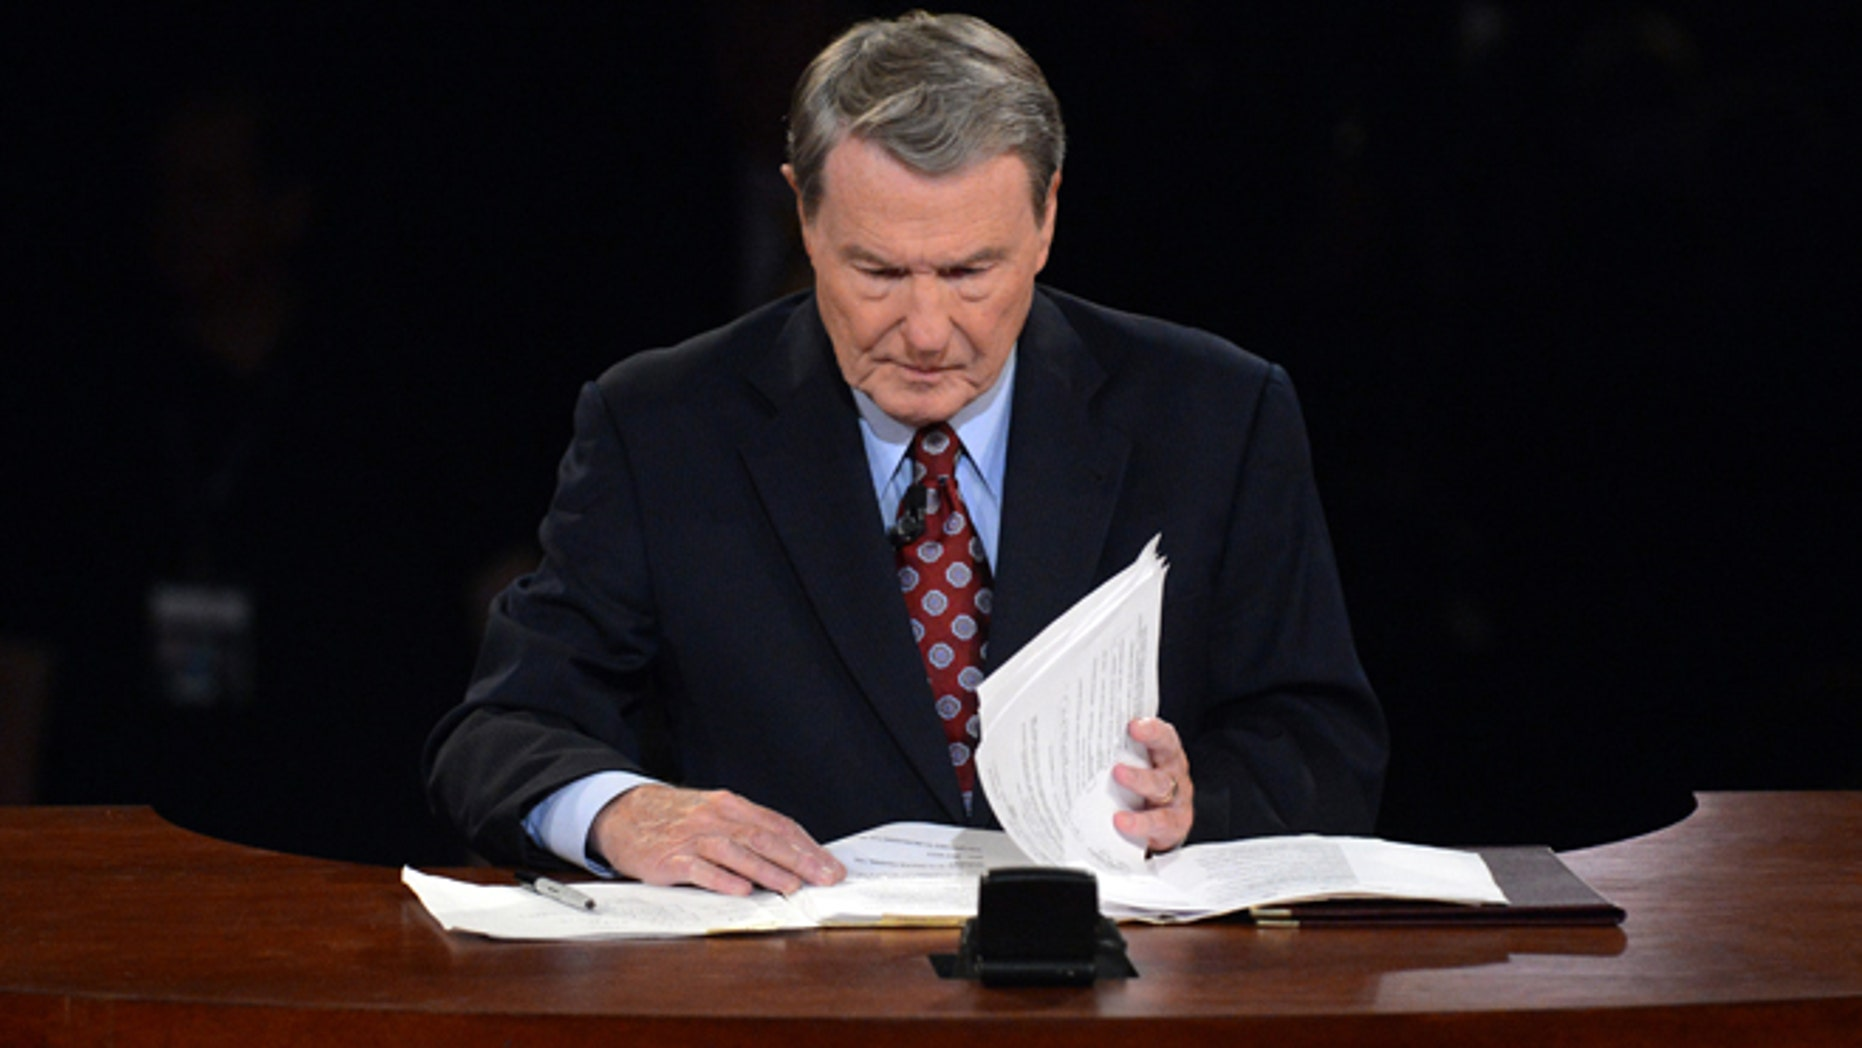 Oct. 3, 2012: Moderator Jim Lehrer looks over his notes before the first presidential debate.